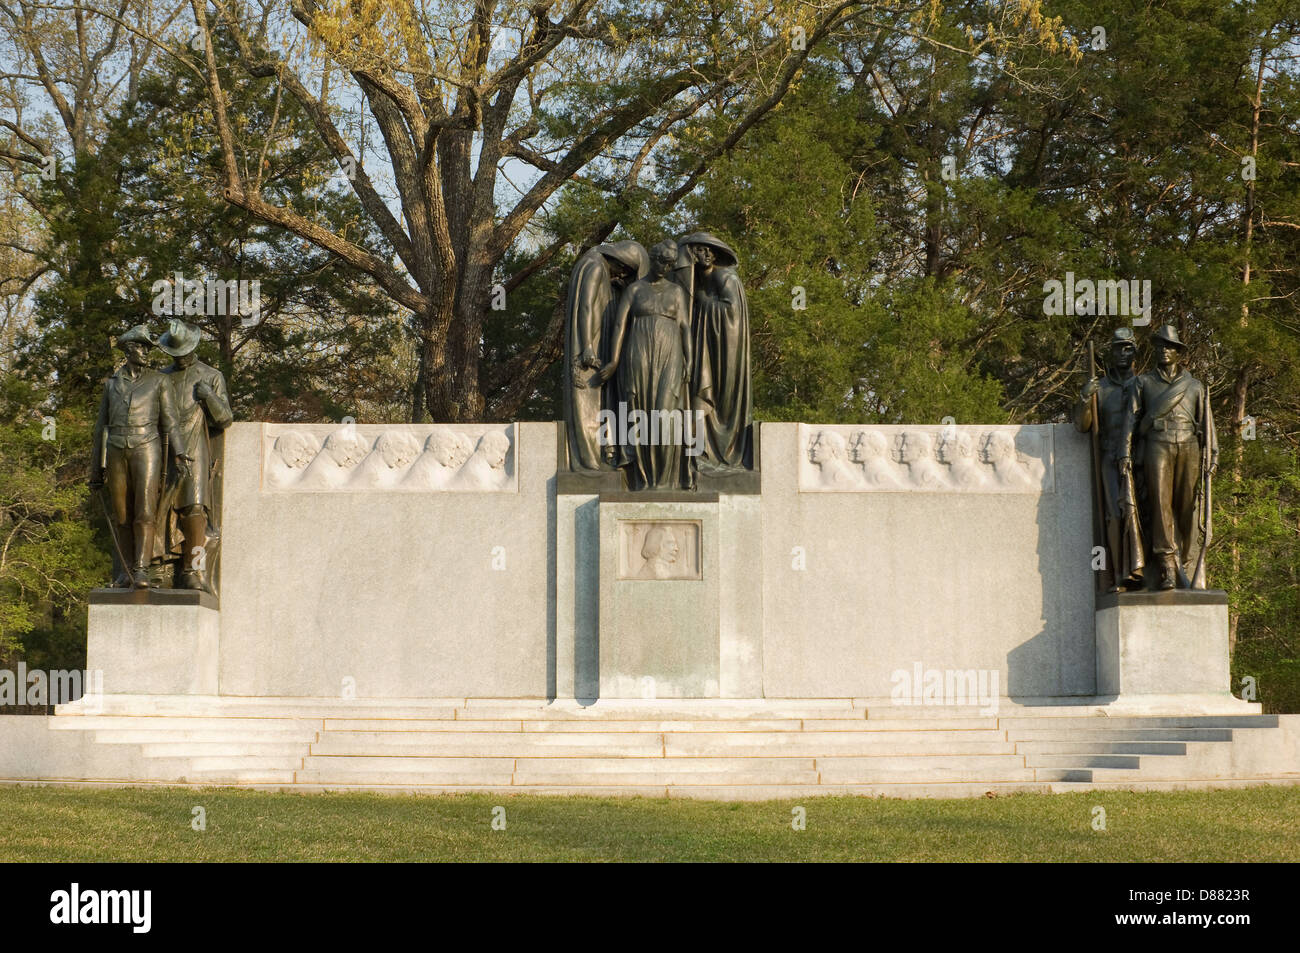 Confederate Memorial, Shiloh National Military Park, Tennessee. Digital photograph - Stock Image